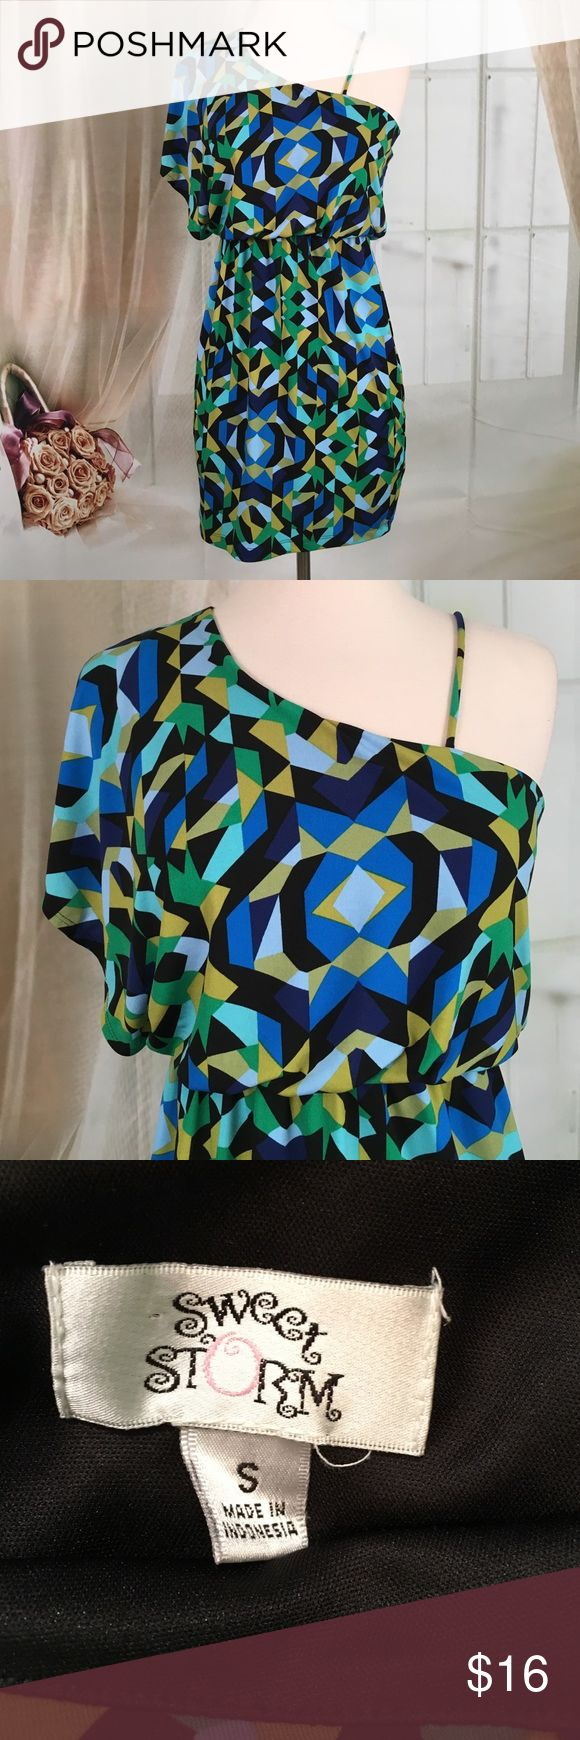 "Sweet Storm Multi Colored Party Dress Very cute little party dress. Colors and blues and greens. Strap on one side short sleeve on the other. Elastic at the waist. 95% polyester. 5% spandex. New condition. Size S. Bust 28 and length 31"".  DR137 Sweet Storm Dresses"